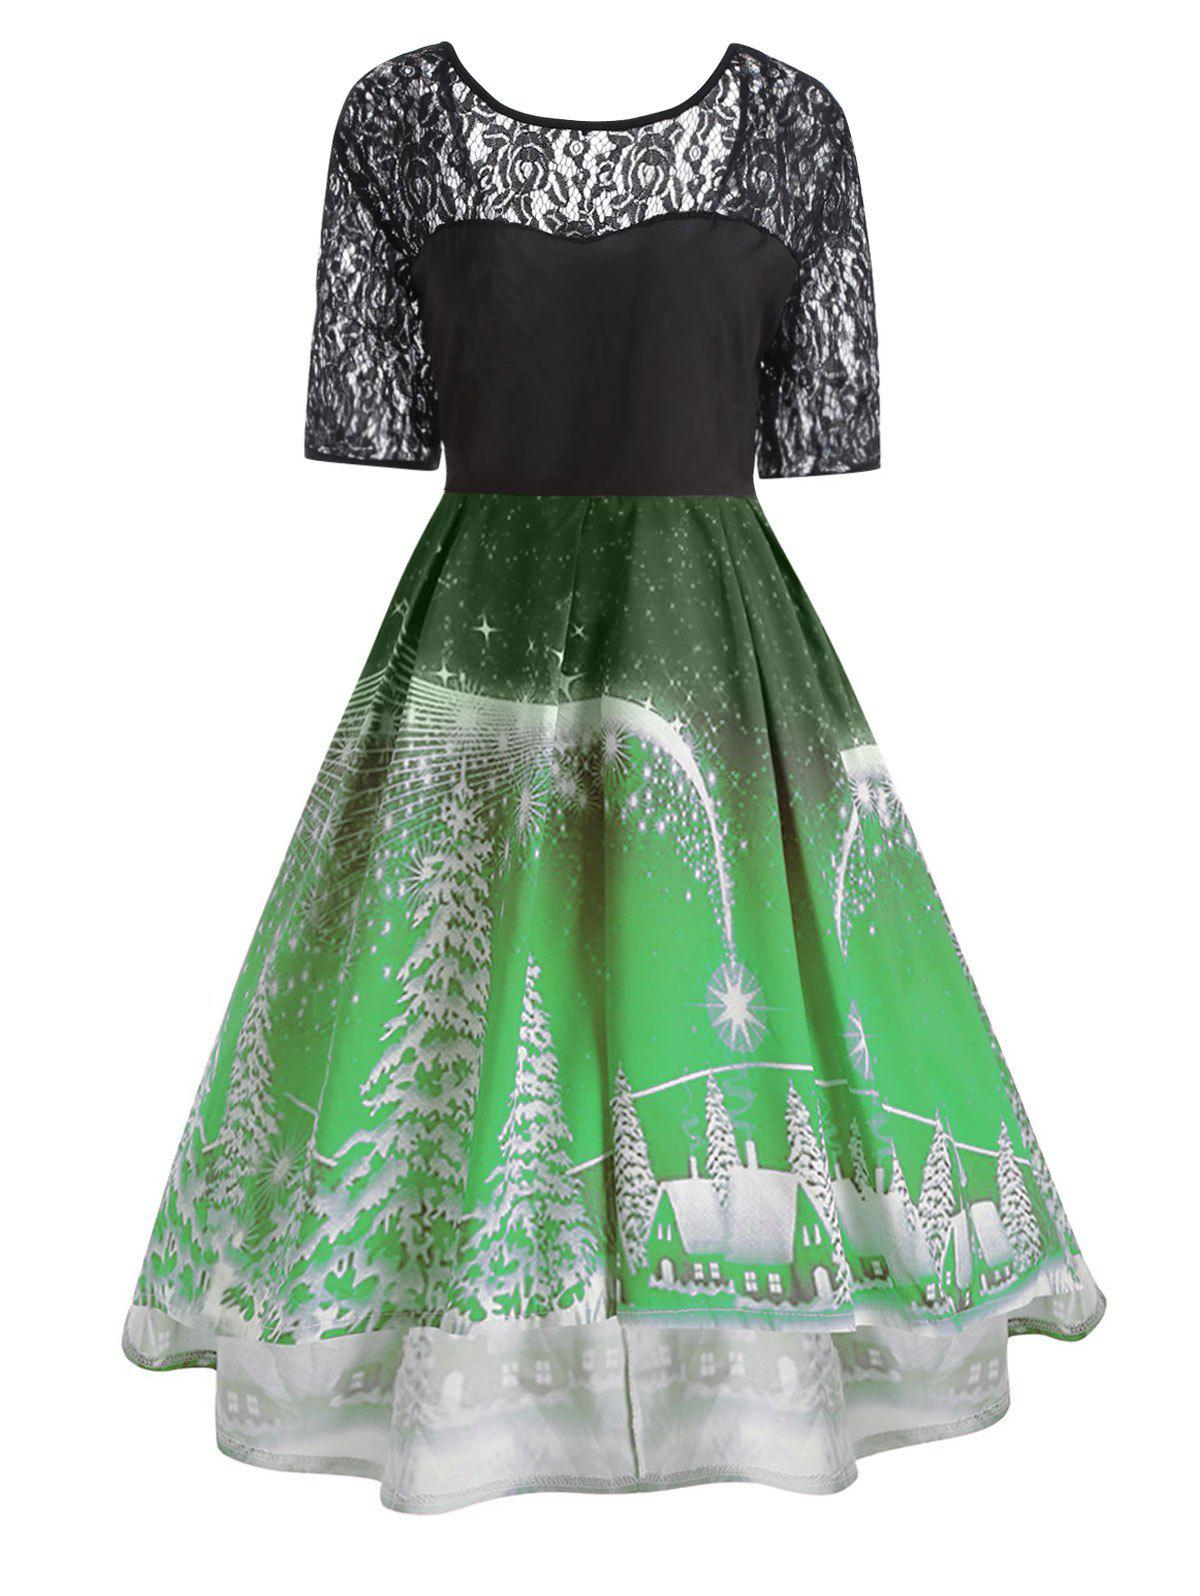 Plus Size  Lace Panel Vintage Christmas Party DressWOMEN<br><br>Size: XL; Color: GREEN; Style: Cute; Material: Polyester; Silhouette: Ball Gown; Dresses Length: Knee-Length; Neckline: Round Collar; Sleeve Length: Short Sleeves; Embellishment: Hollow Out,Lace,Vintage; Pattern Type: Print; With Belt: No; Season: Fall,Winter; Weight: 0.3200kg; Package Contents: 1 x Dress;